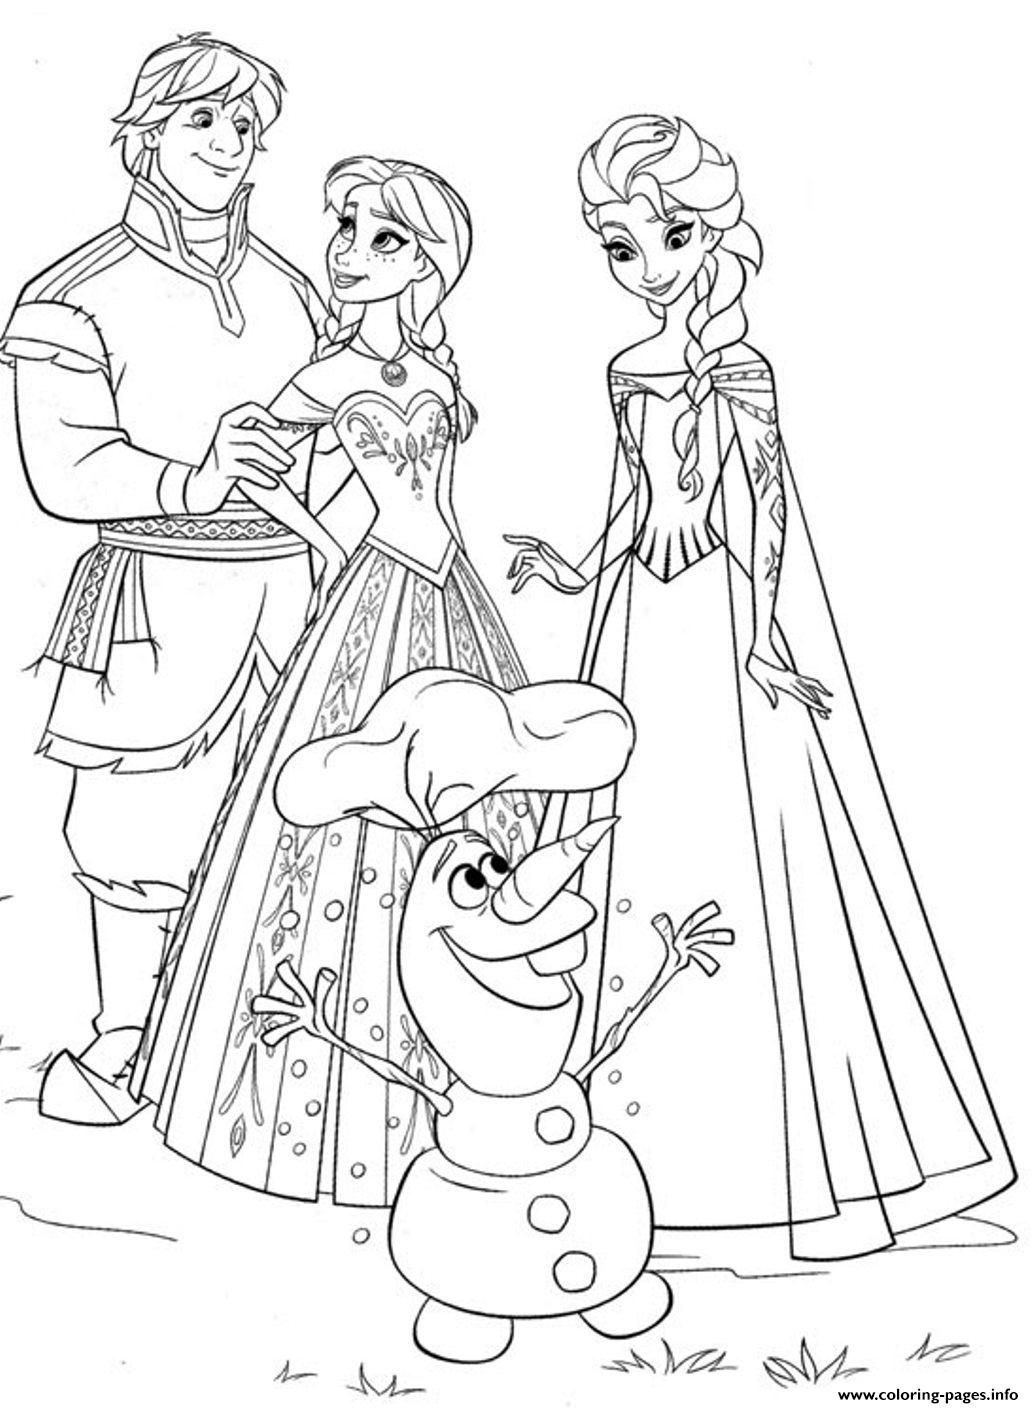 Print Frozen Family4eec Coloring Pages Kids Coloring Books Frozen Coloring Pages Disney Coloring Pages